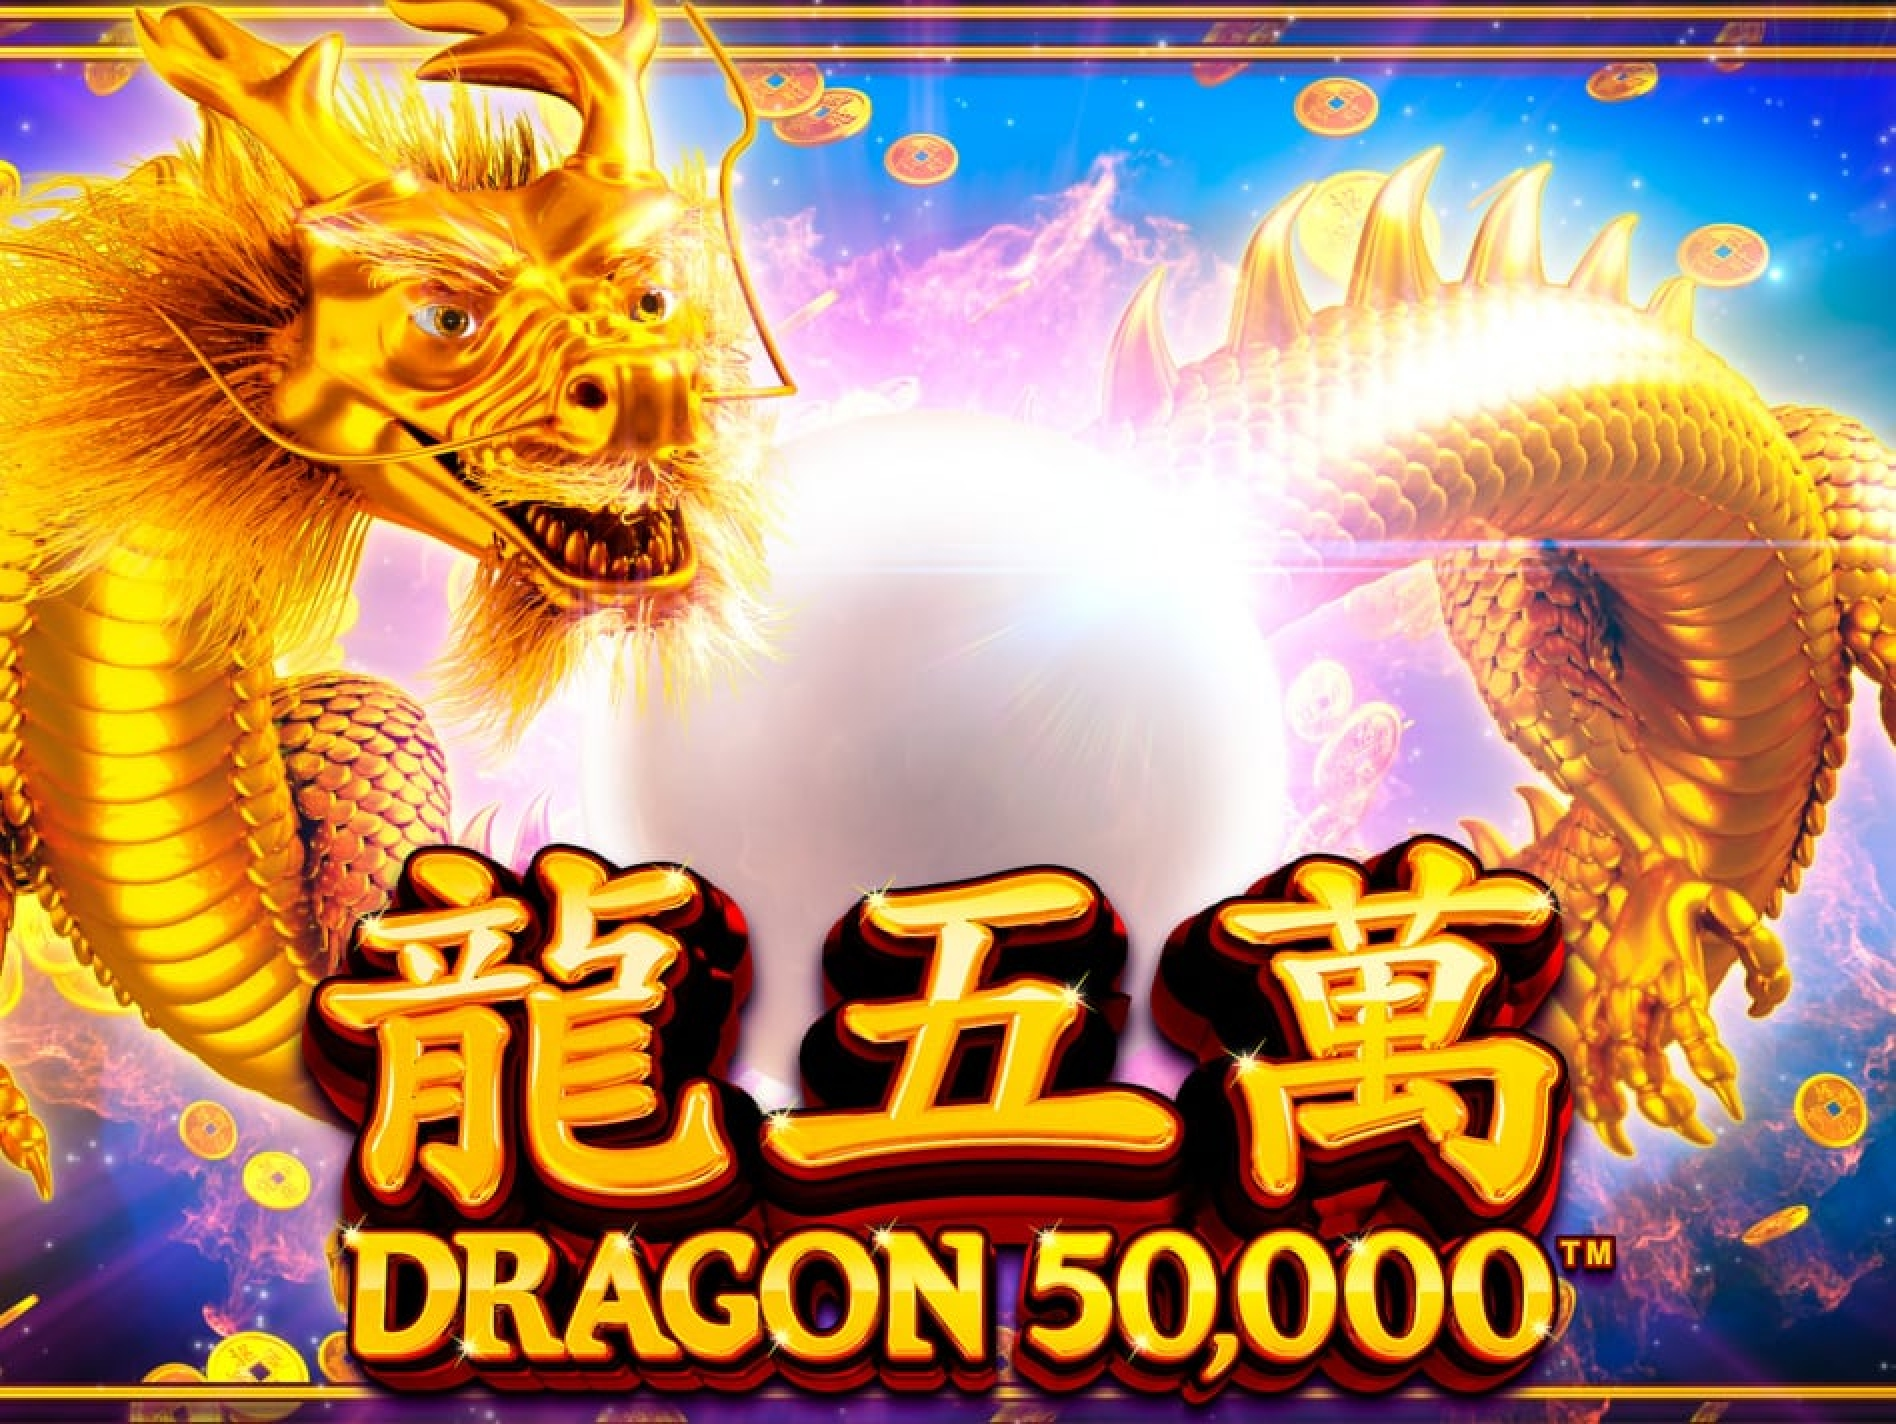 The Dragon 50000 Online Slot Demo Game by Chance Interactive